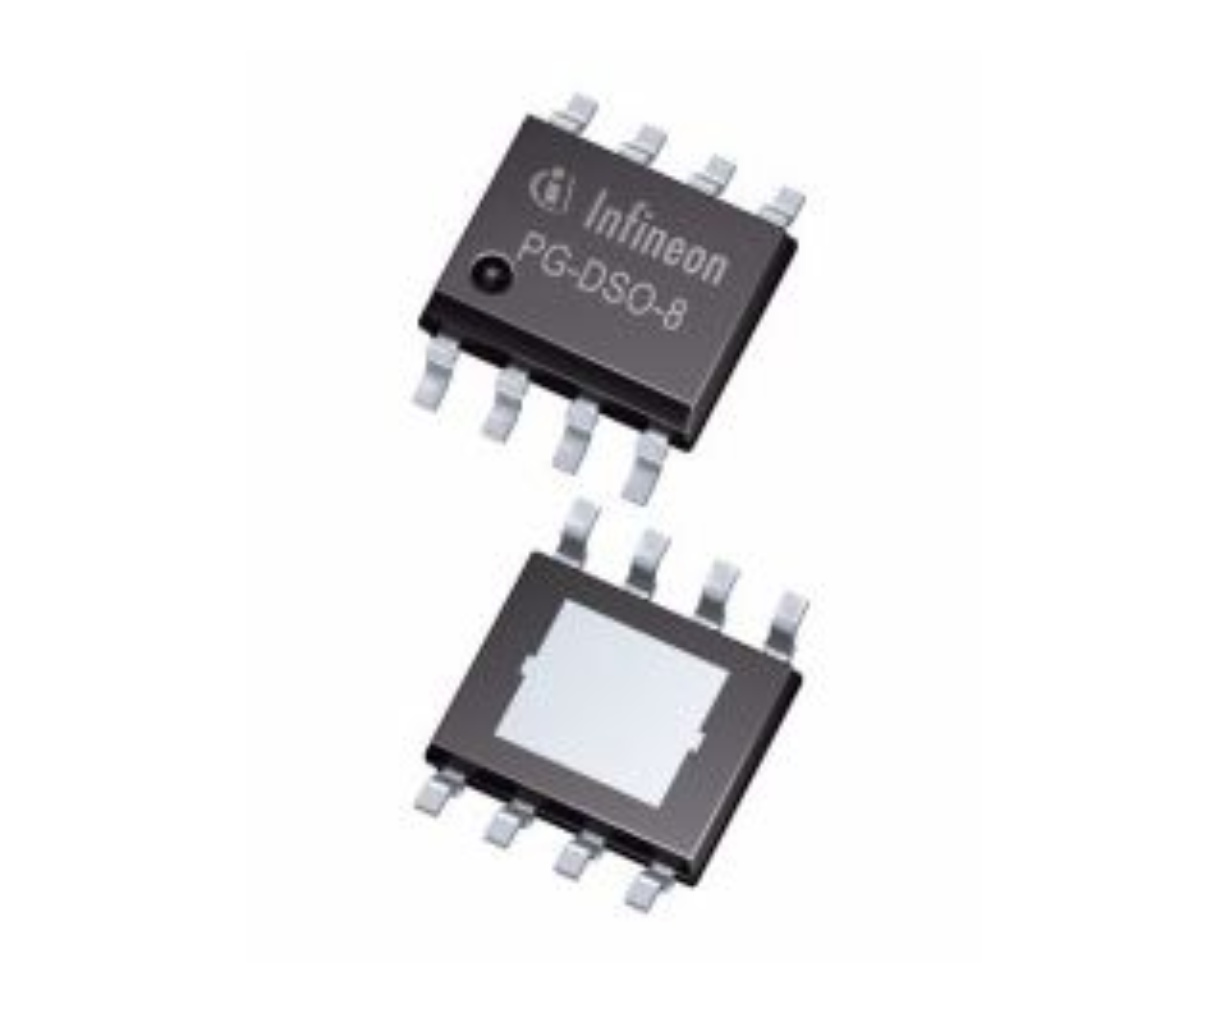 Tle8366e V50 Infineon Technologies Medium Power Schottky Diodes 200 Ma Nxp 01 00 2016 12 14 Pdf 13 Mb